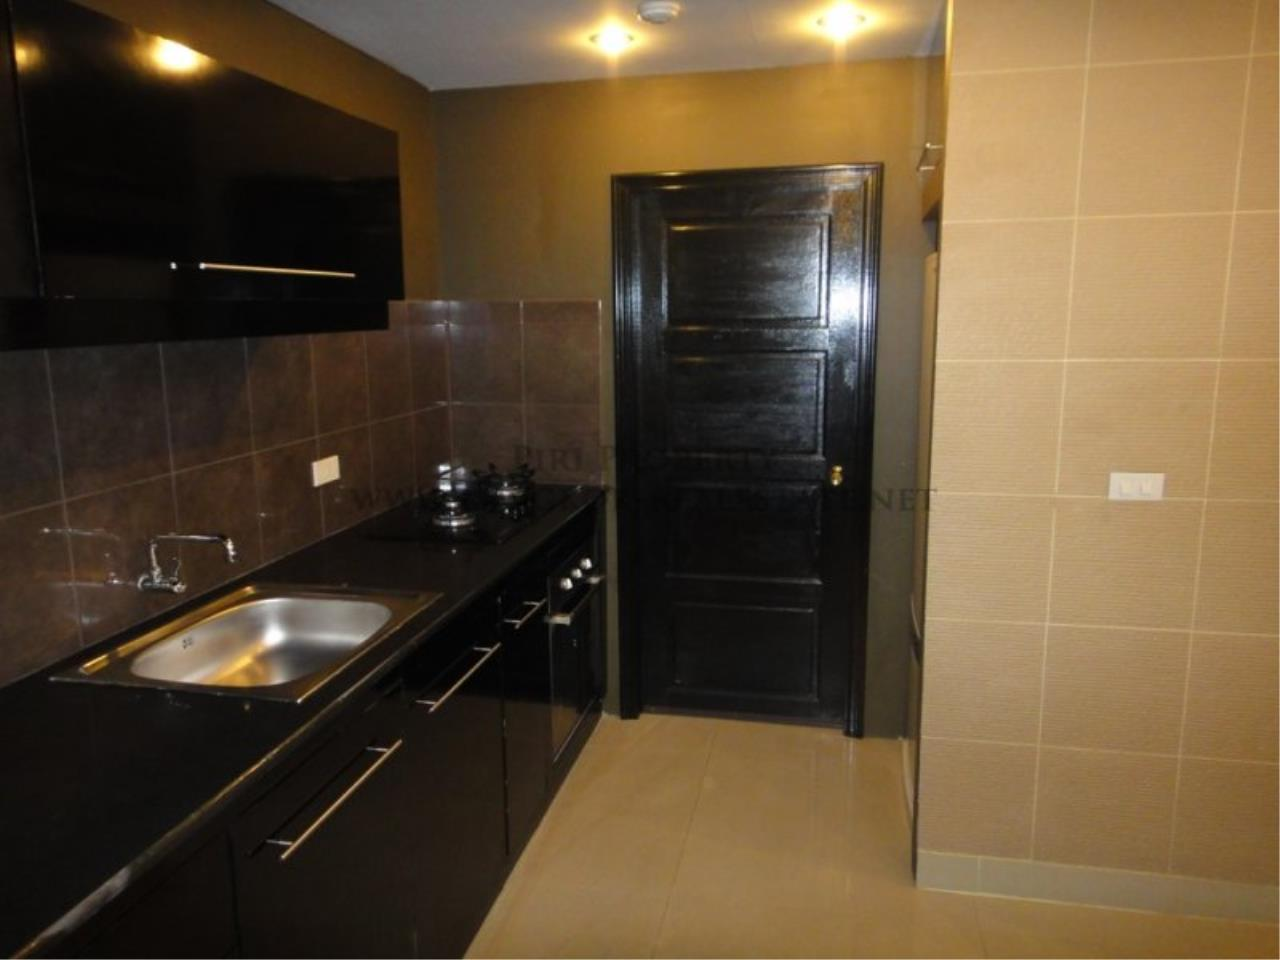 Piri Property Agency's Baan Phrom Phong - 2 Bedroom Condo for Sale - RENOVATED! 6